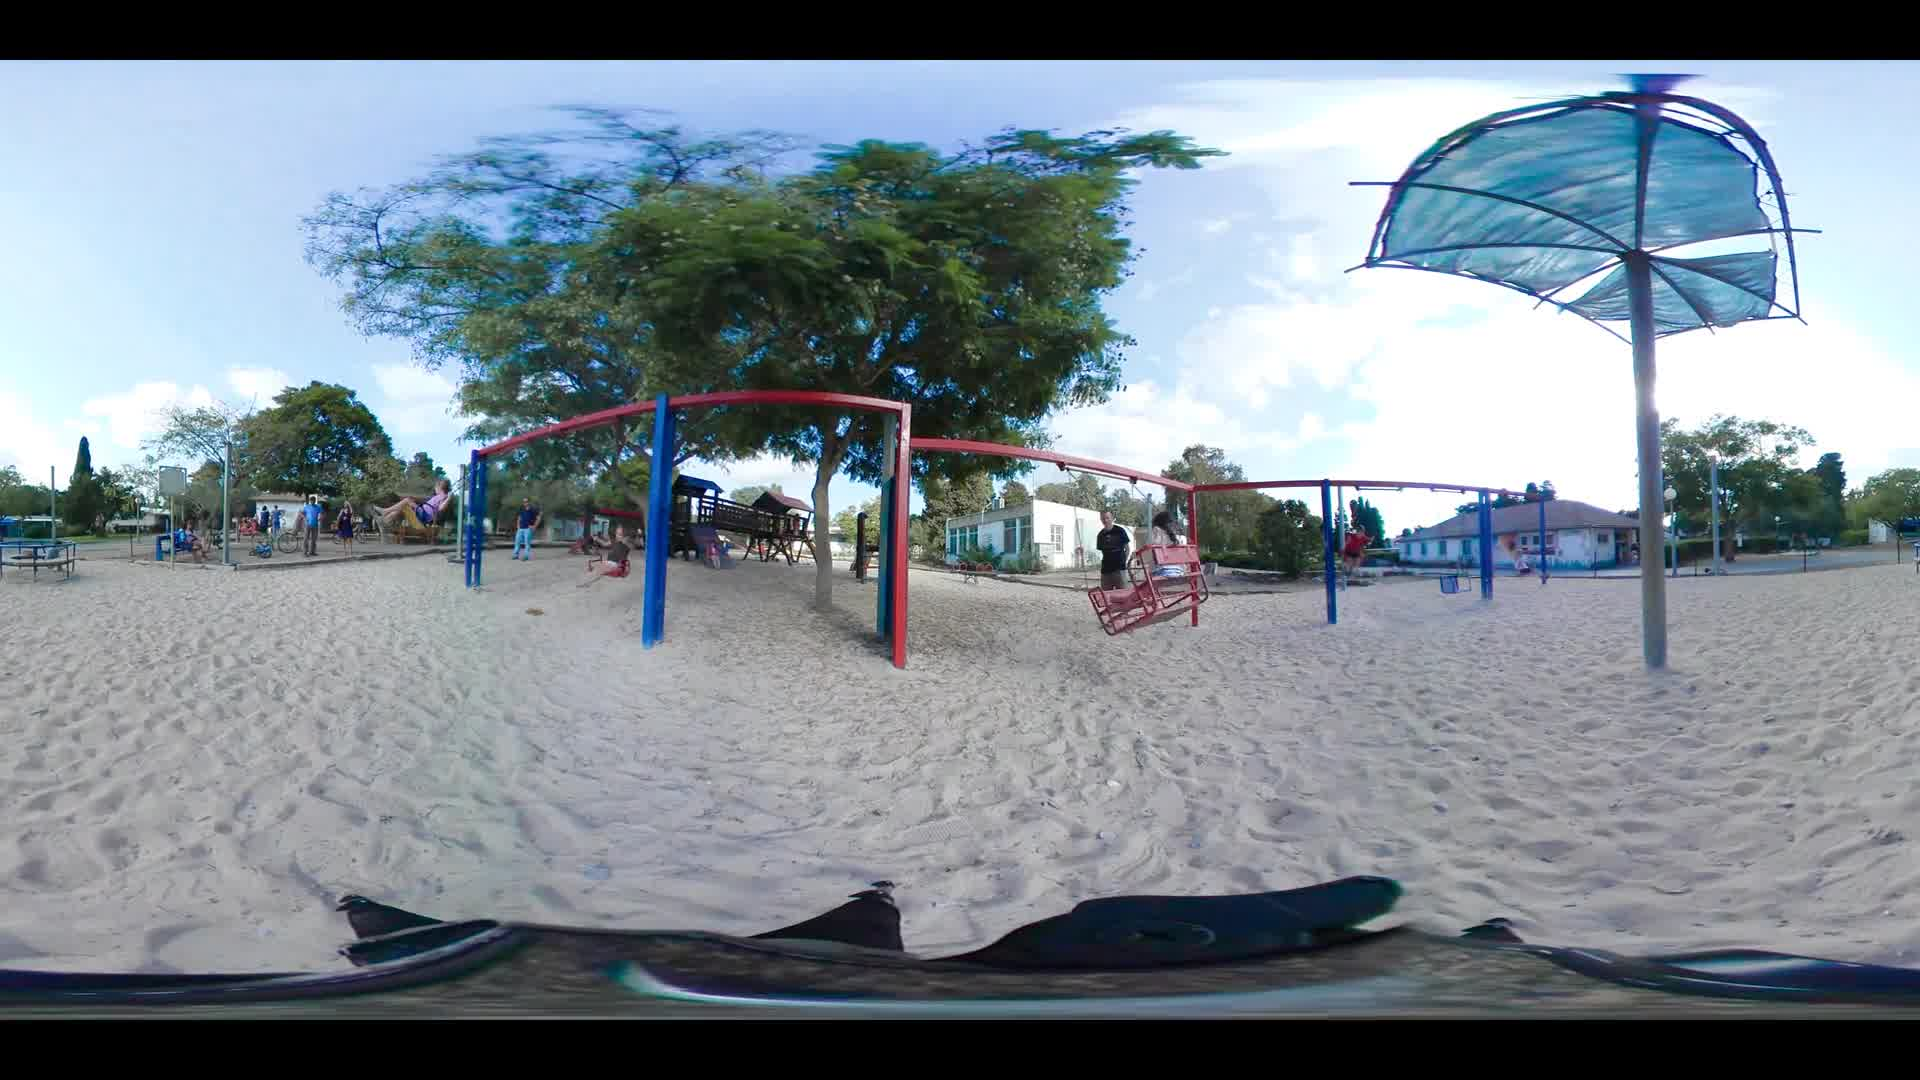 360 VR video of kids playing in a playground